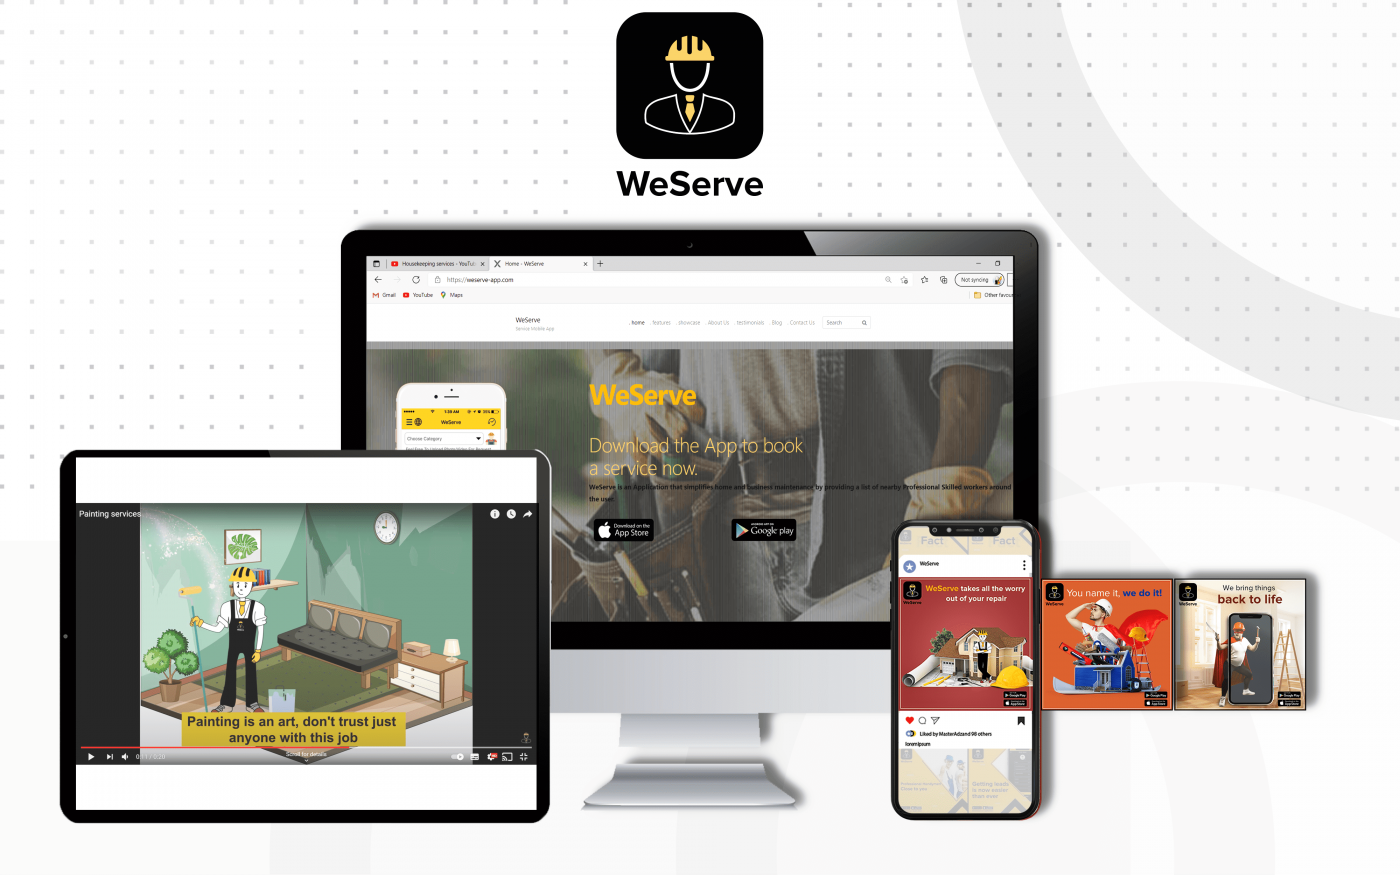 Masteradz designs for WeServe displayed on a monitor, mobile, and tablet